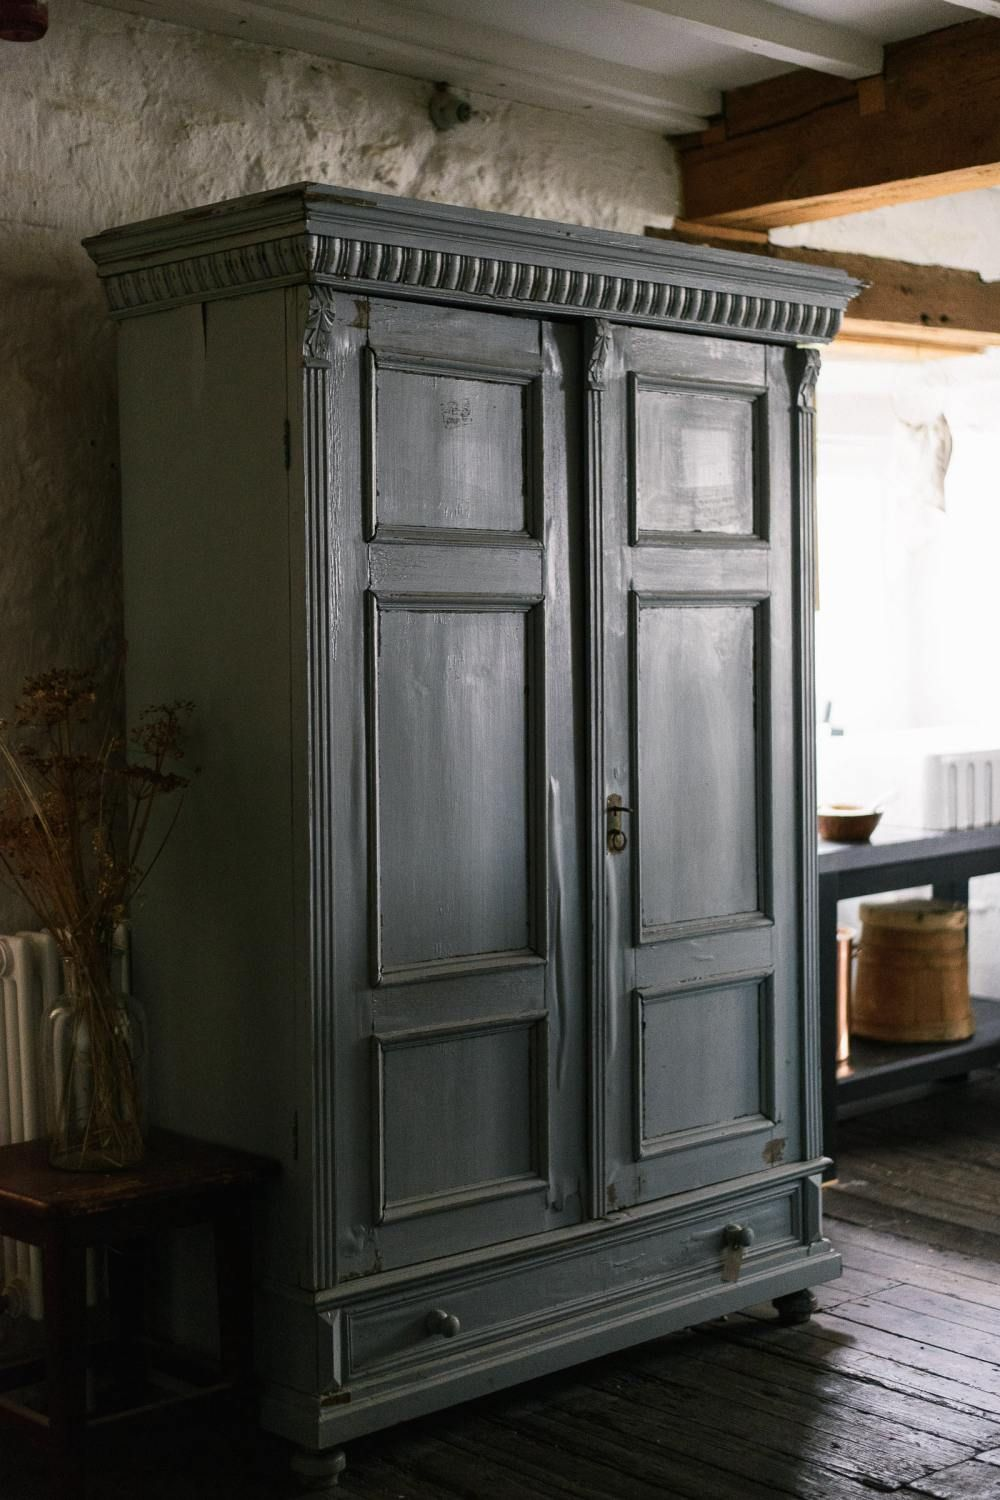 Cupboards Cabinets Drawers Devol Kitchens Antique Wardrobe Antique Armoire Antiques